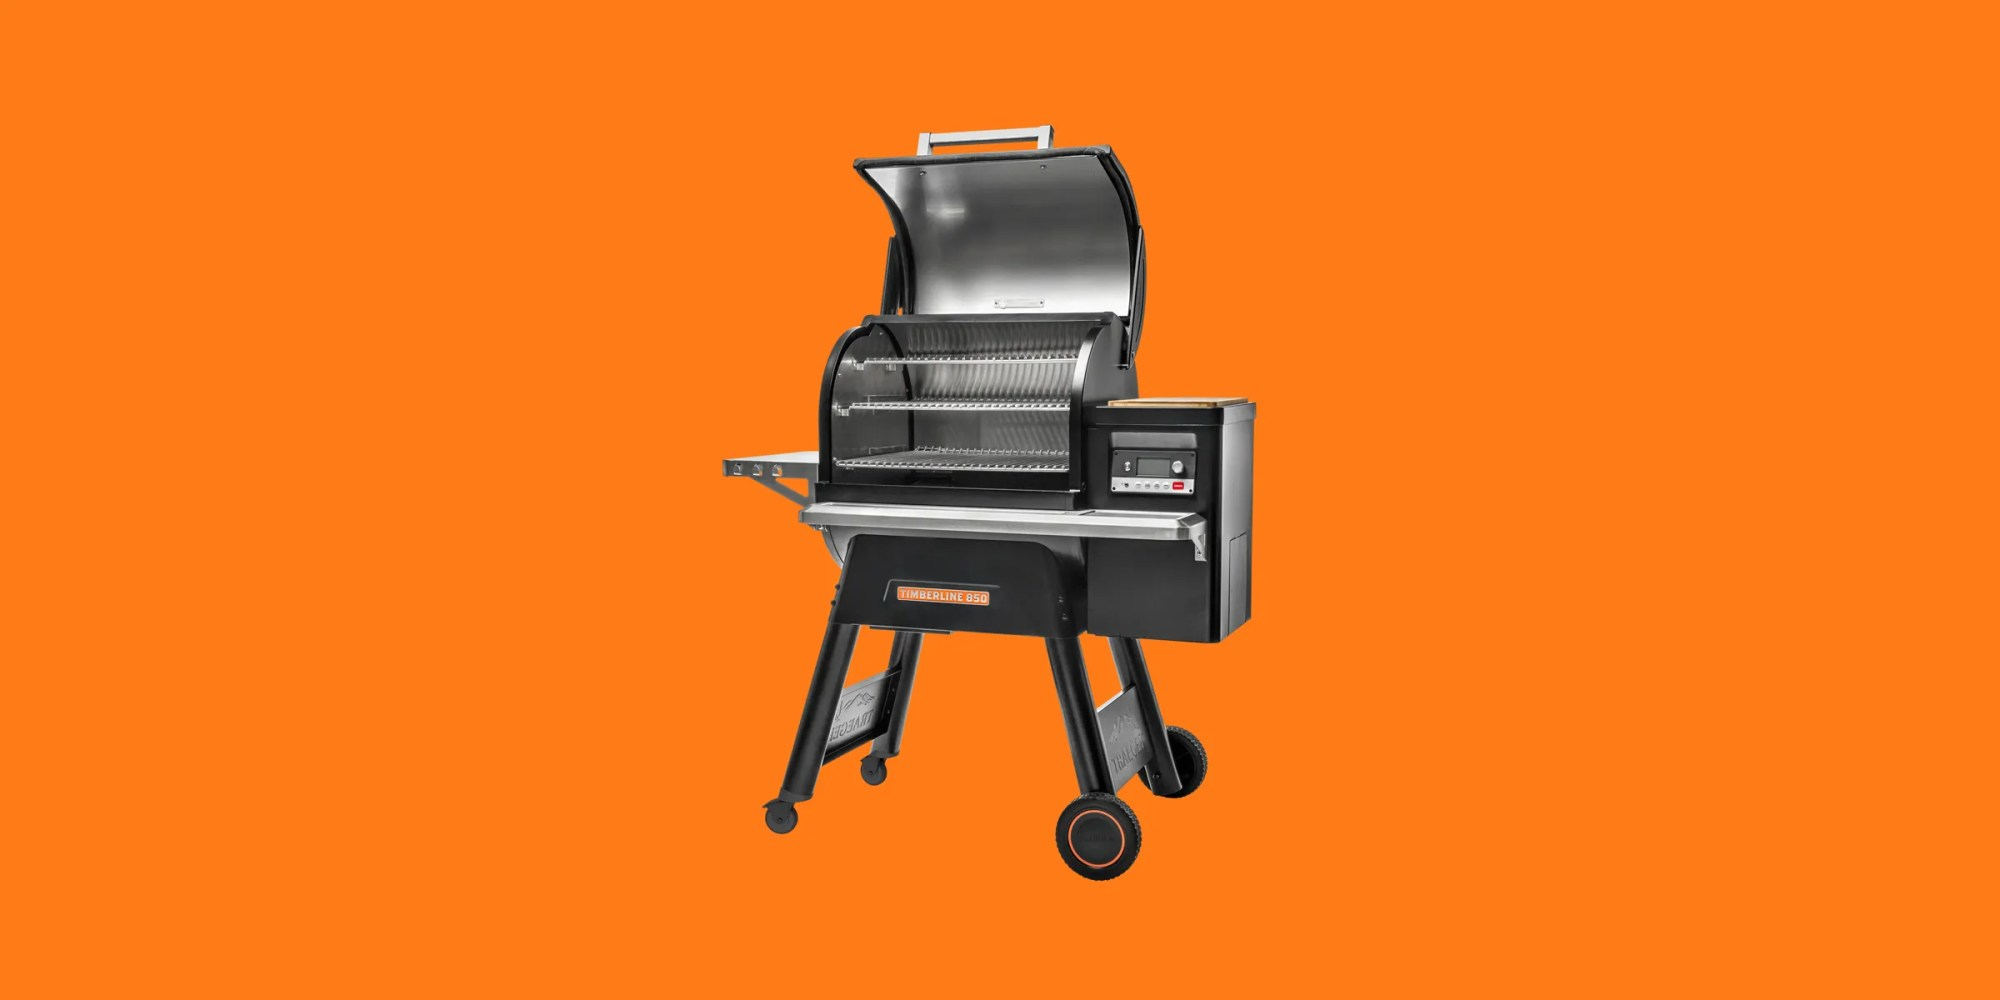 hight resolution of traeger timberline 850 review shows promise but its flaws leave it undercooked wired